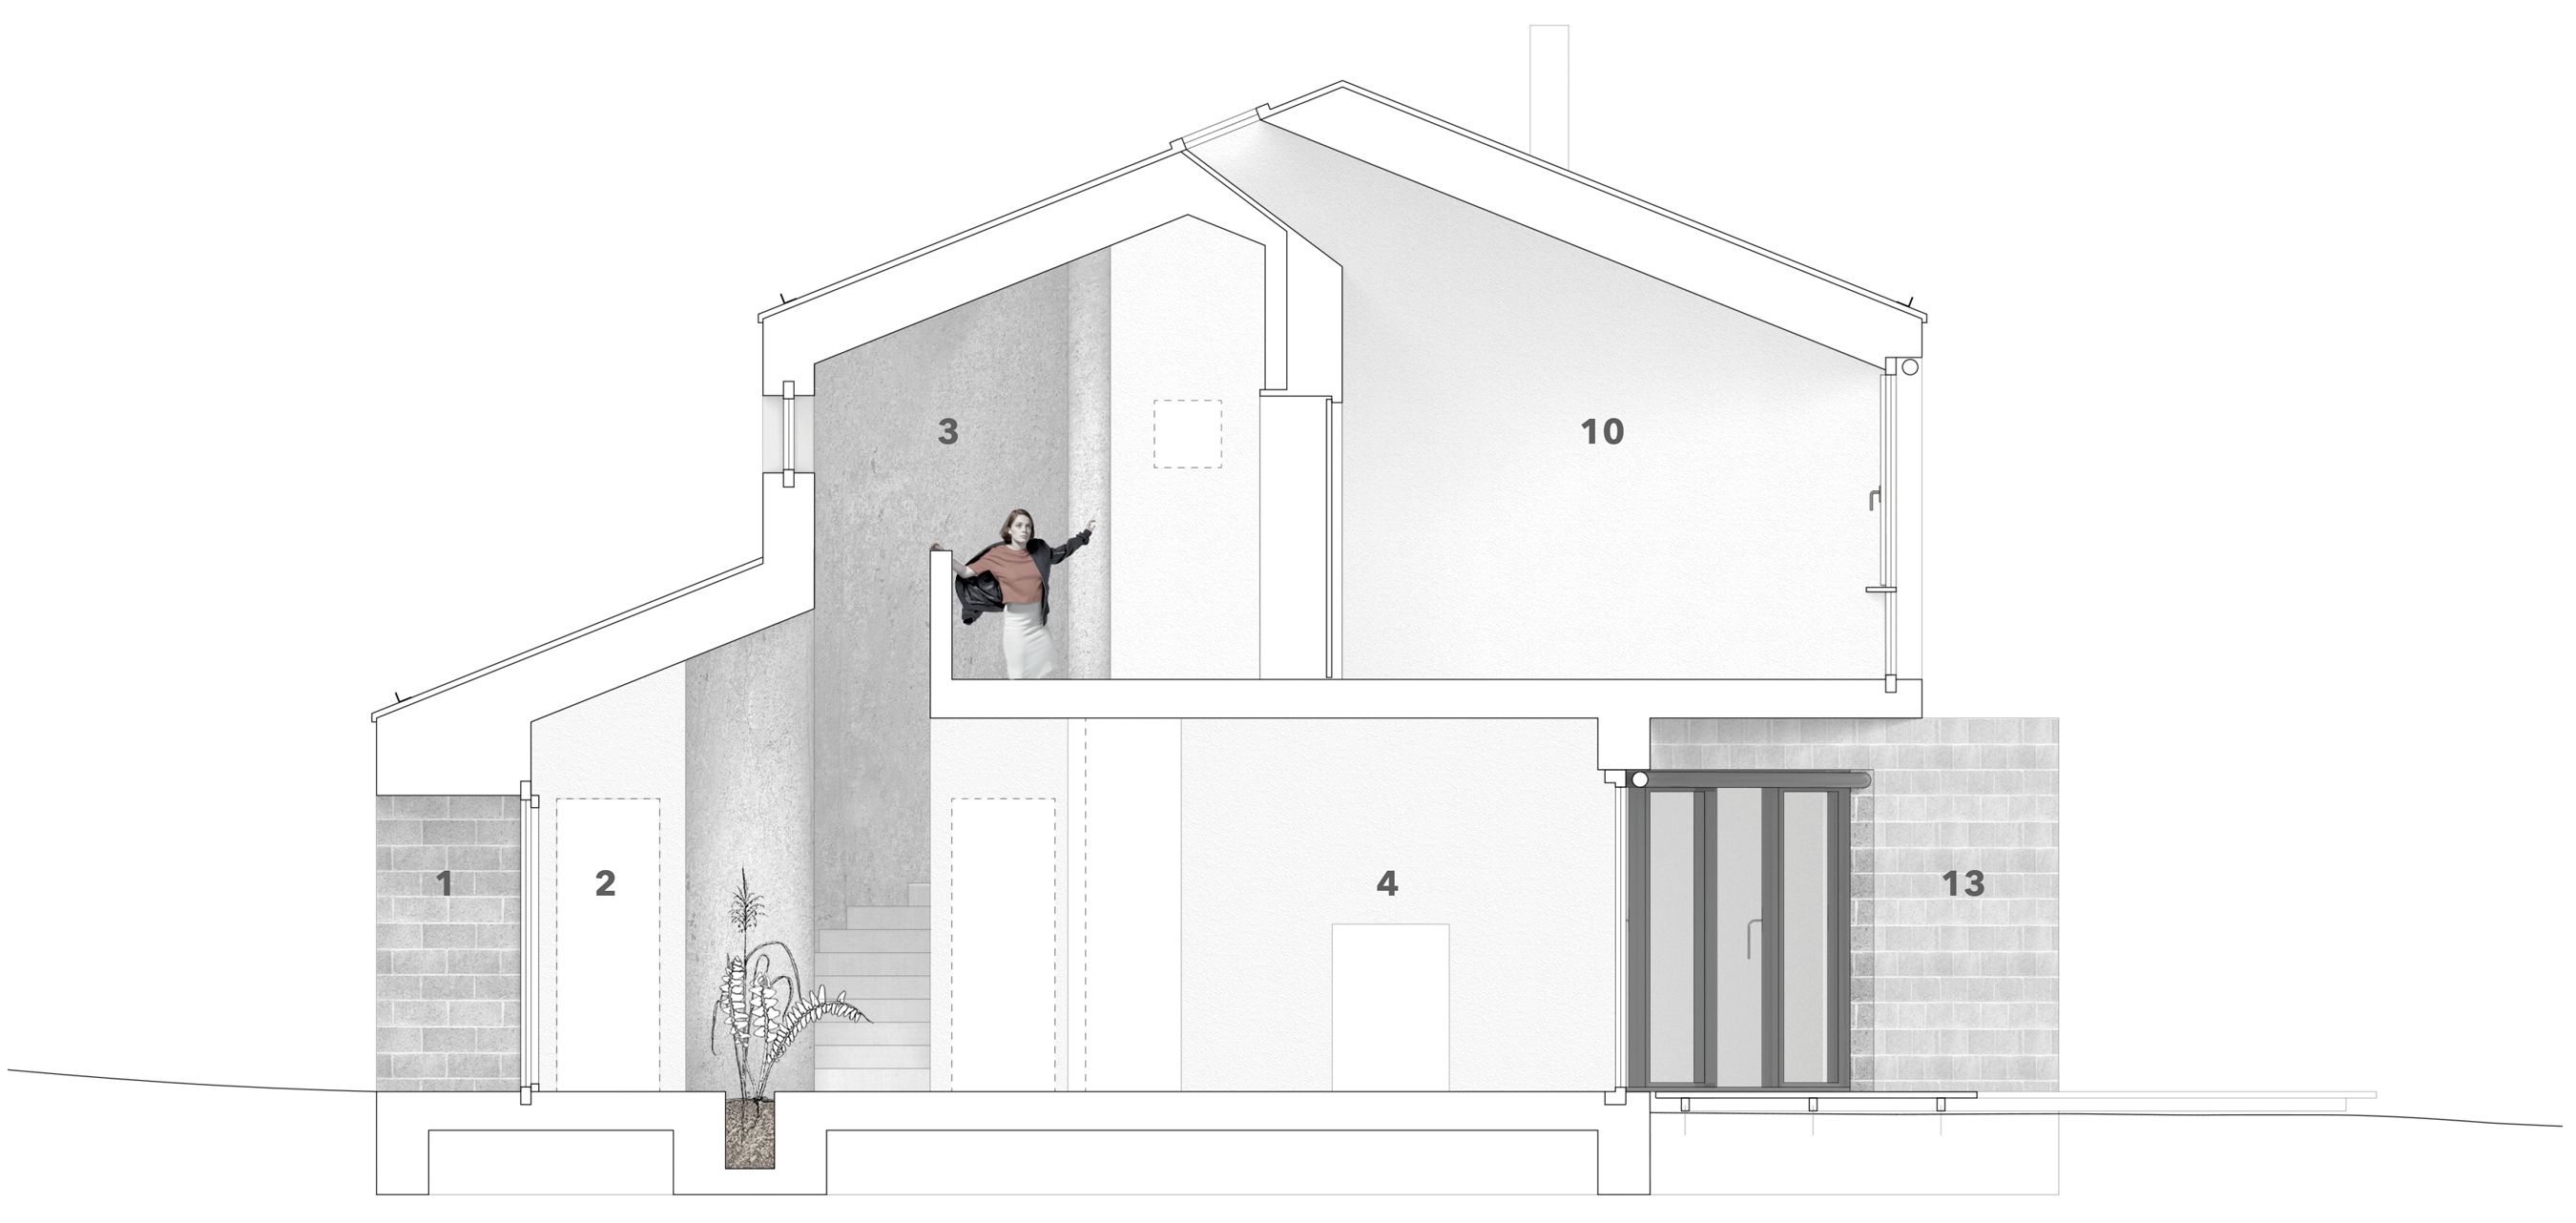 cross Section & materiality: 1 - main entrance, 2 - Cloak room, 3 - Hallway with stairs, 4 - kitchen,  10 - master bedroom, 13 - garden terrace